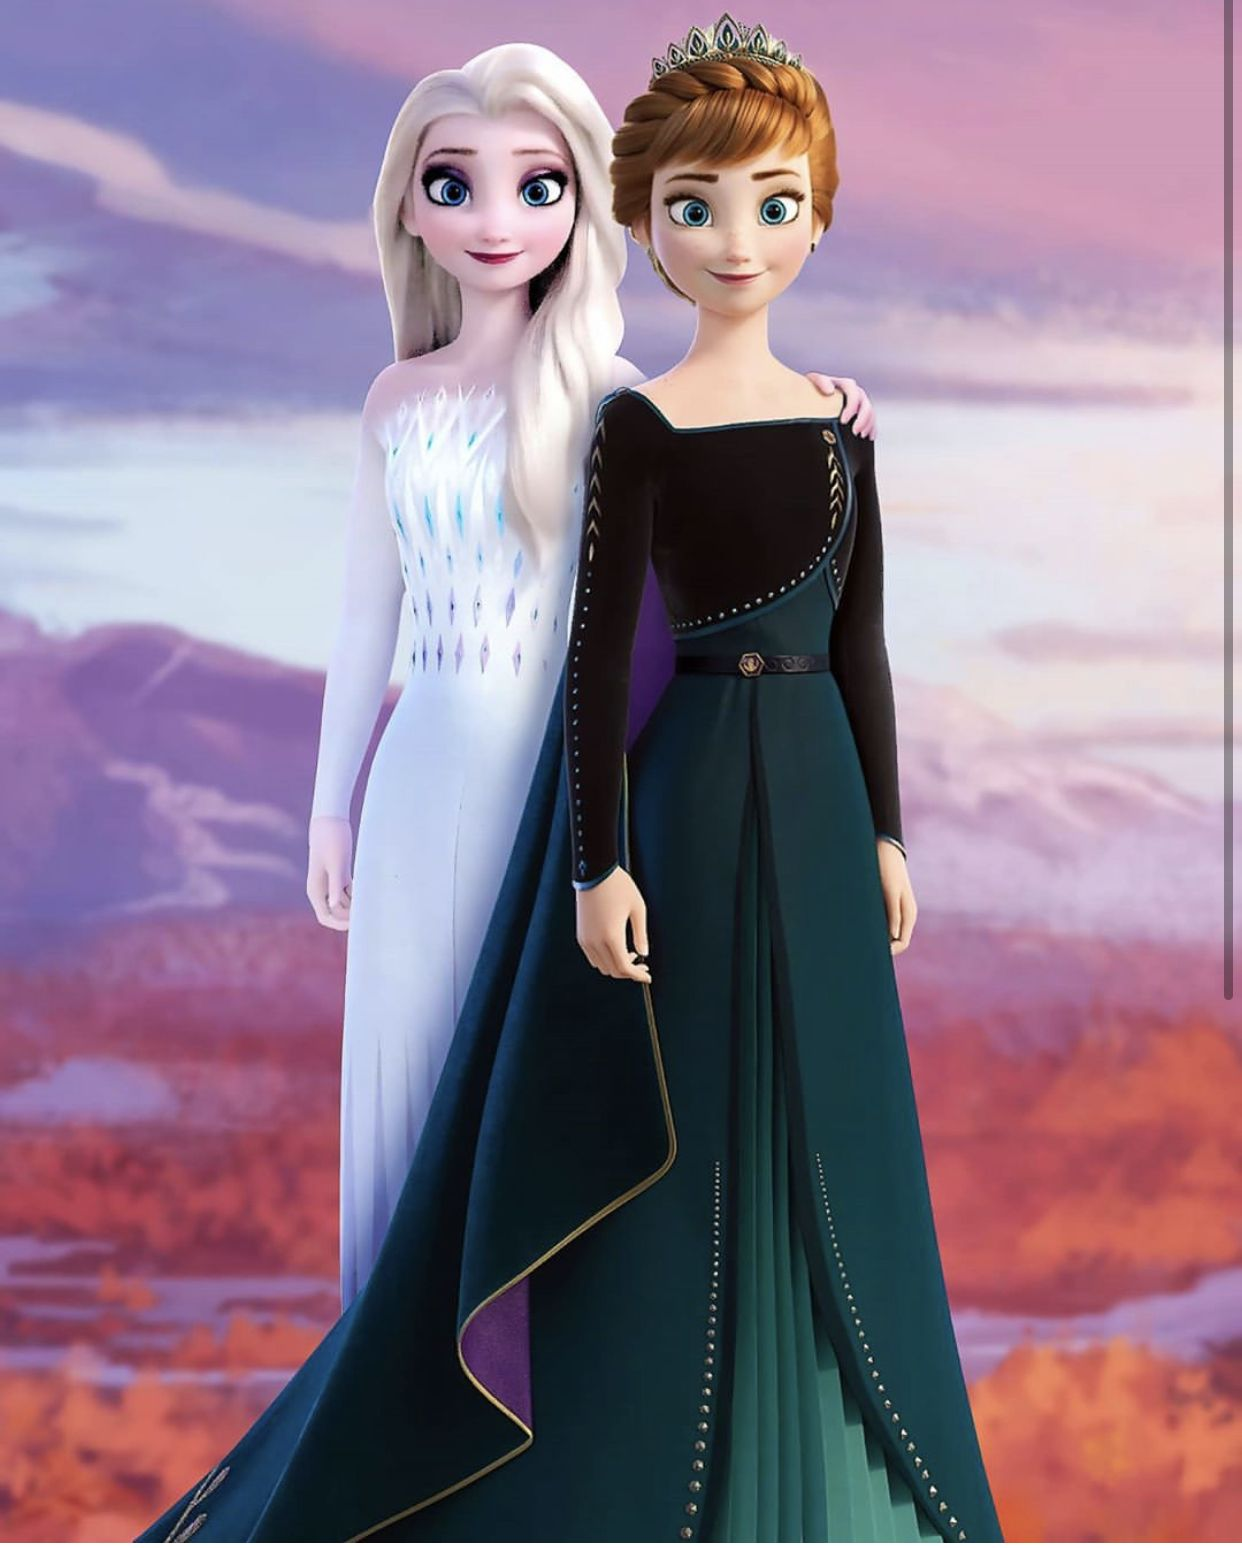 Pin by Duchess Of The Moon on Frozen 2 Disney princess